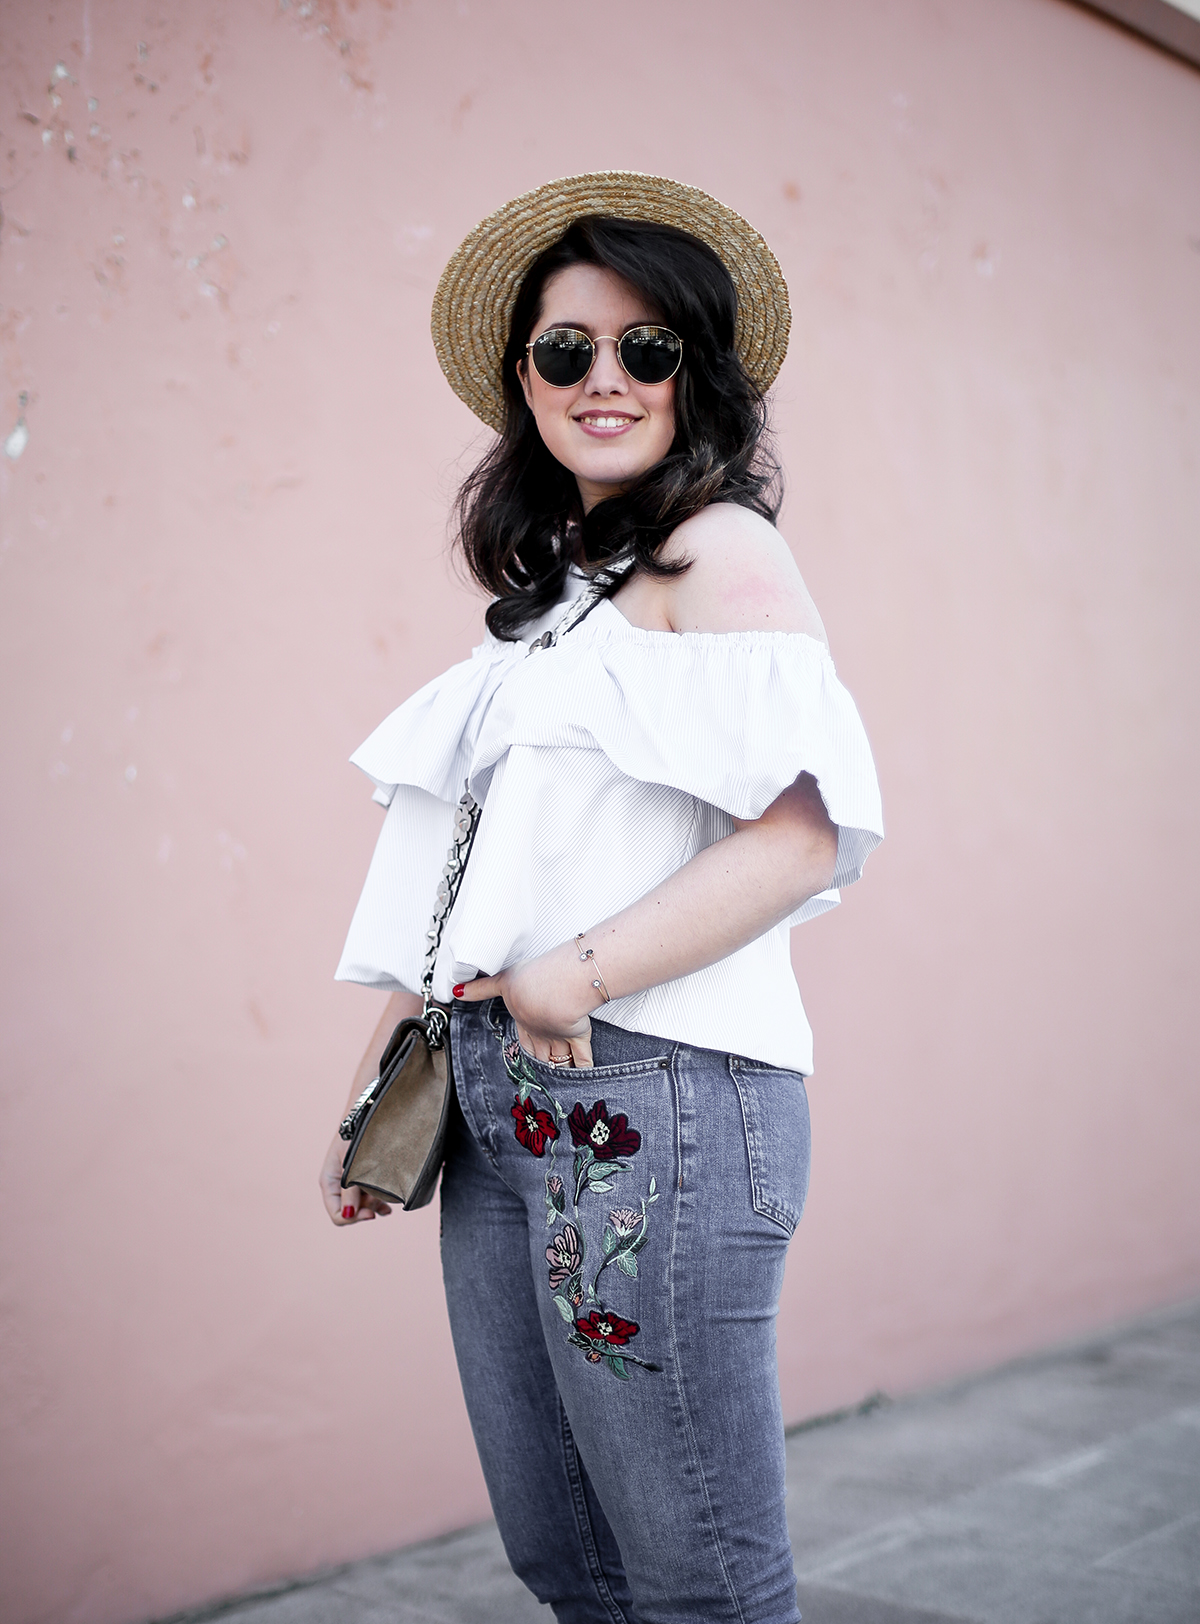 embroidered-jeans-topshop-knot-slippers-new-look-dionysus-off-shoulder-top-myblueberrynightsblog13